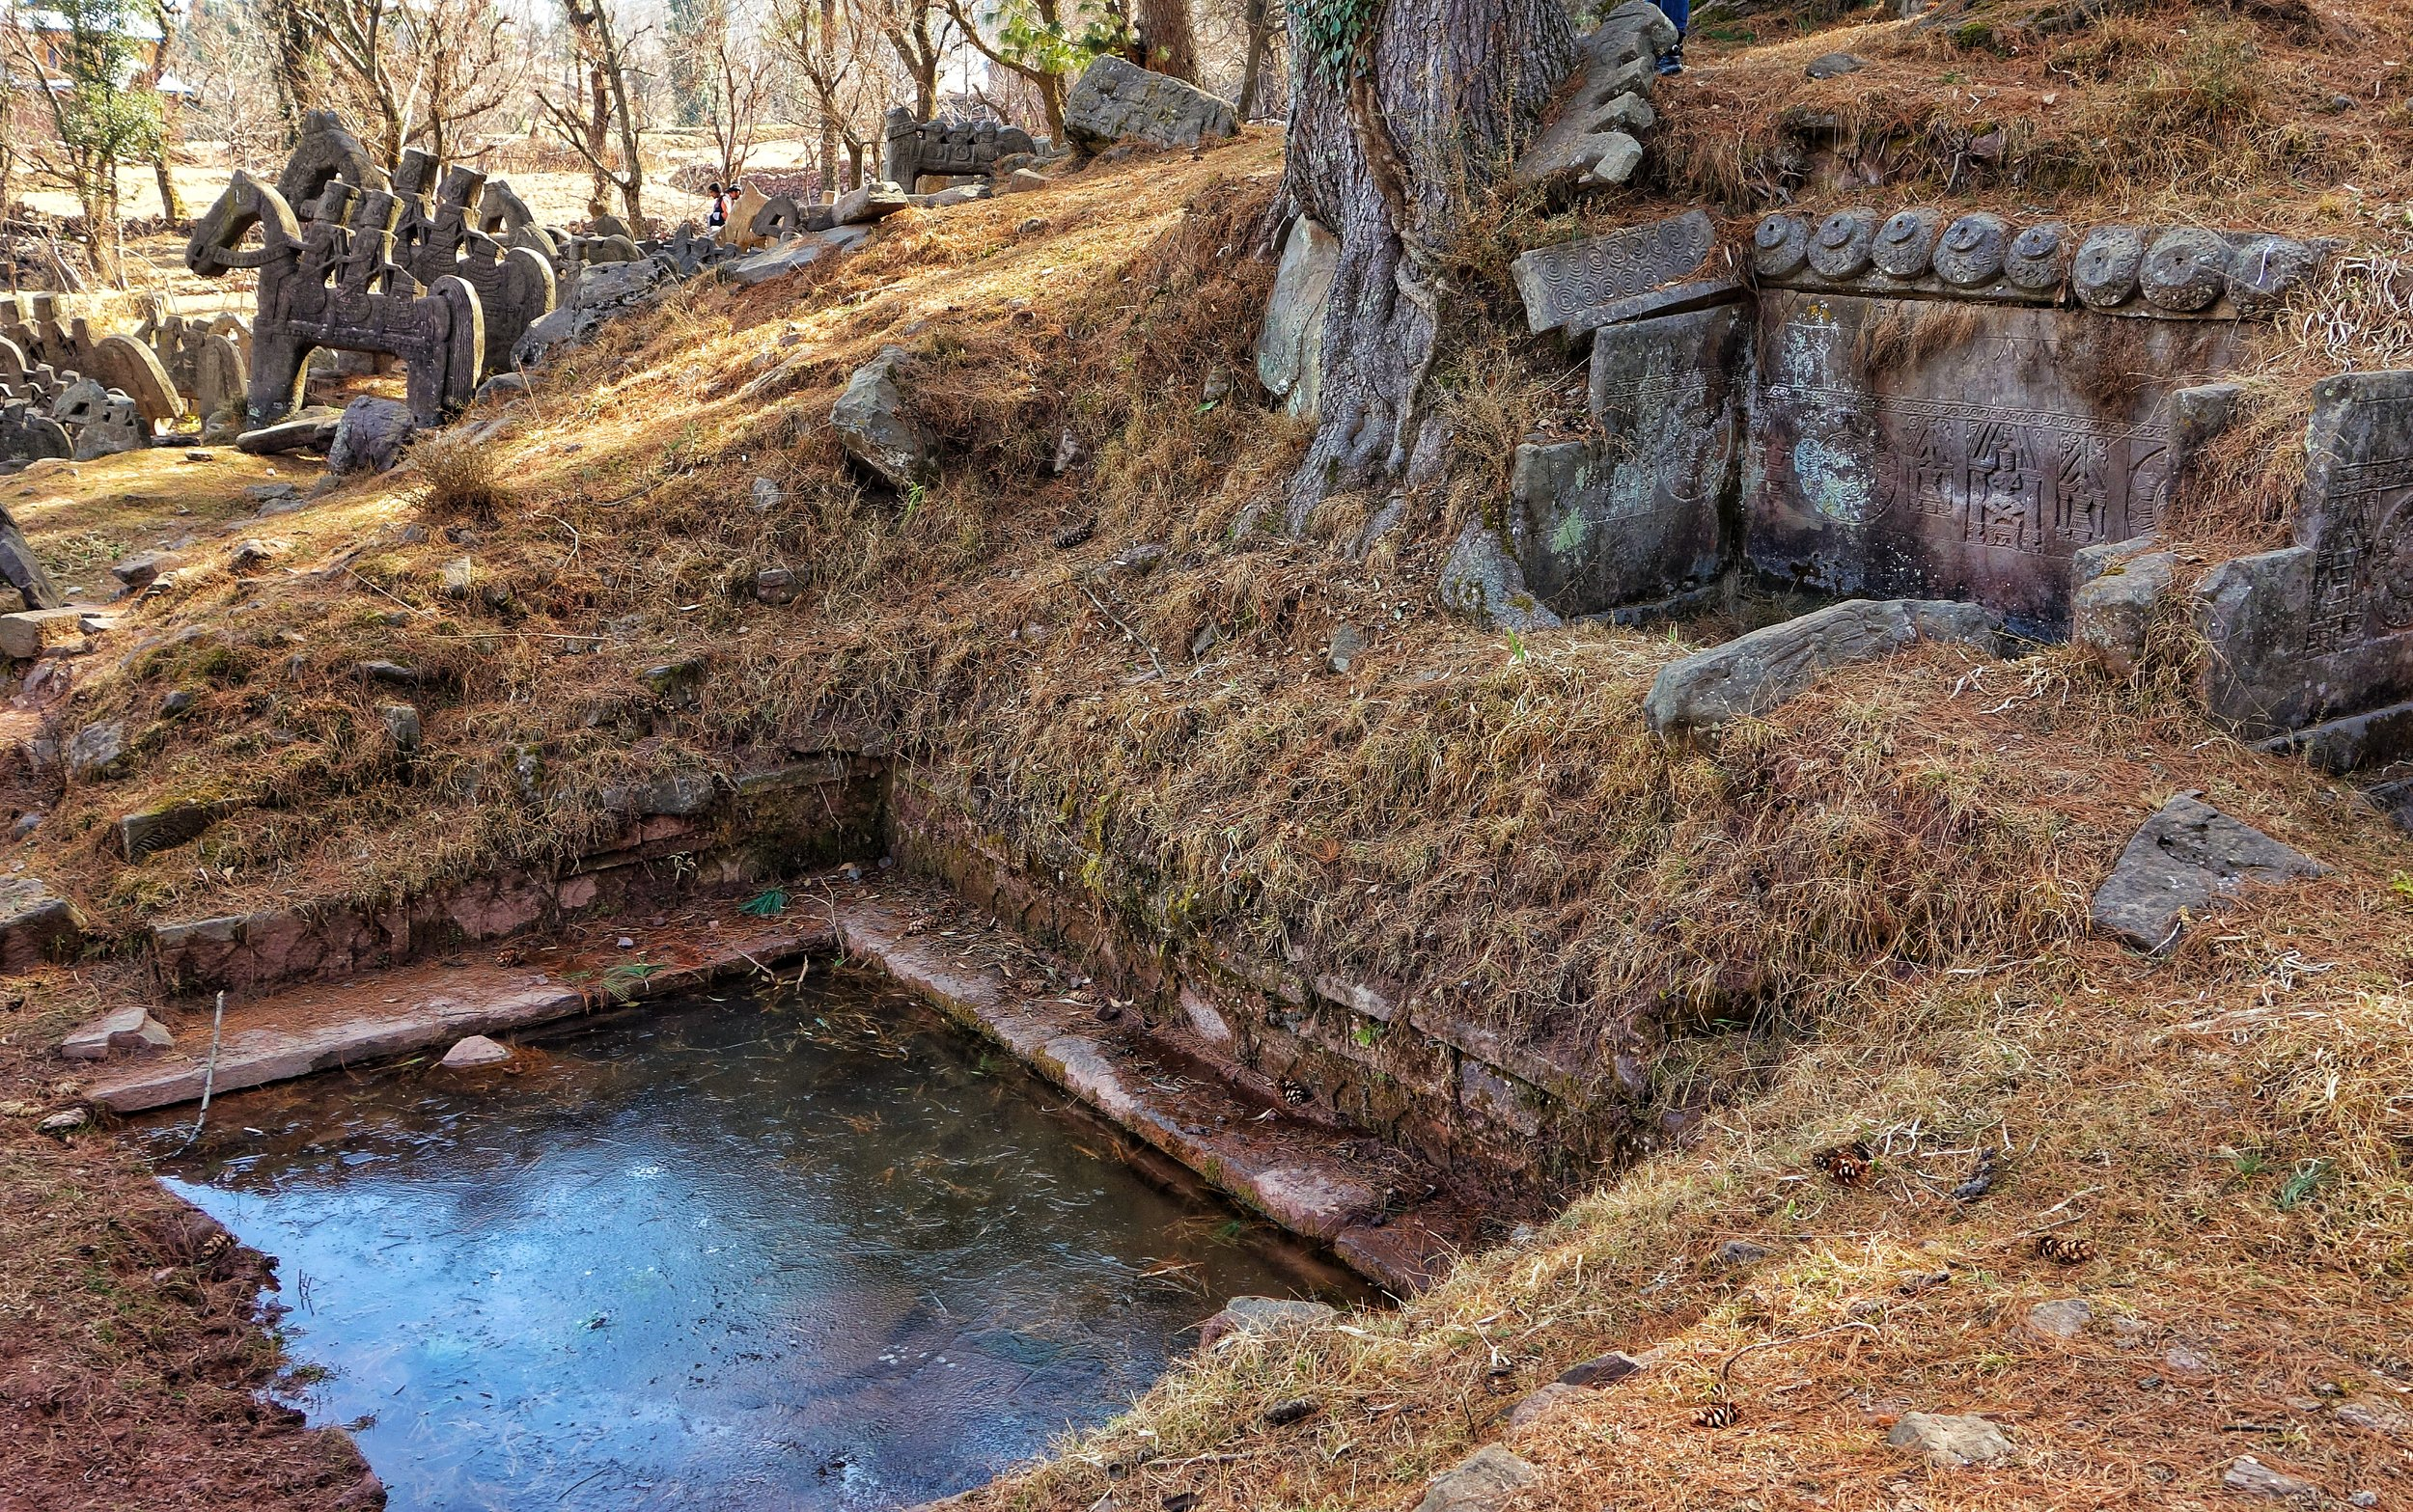 The Boali or Ponds fed by natural spring water